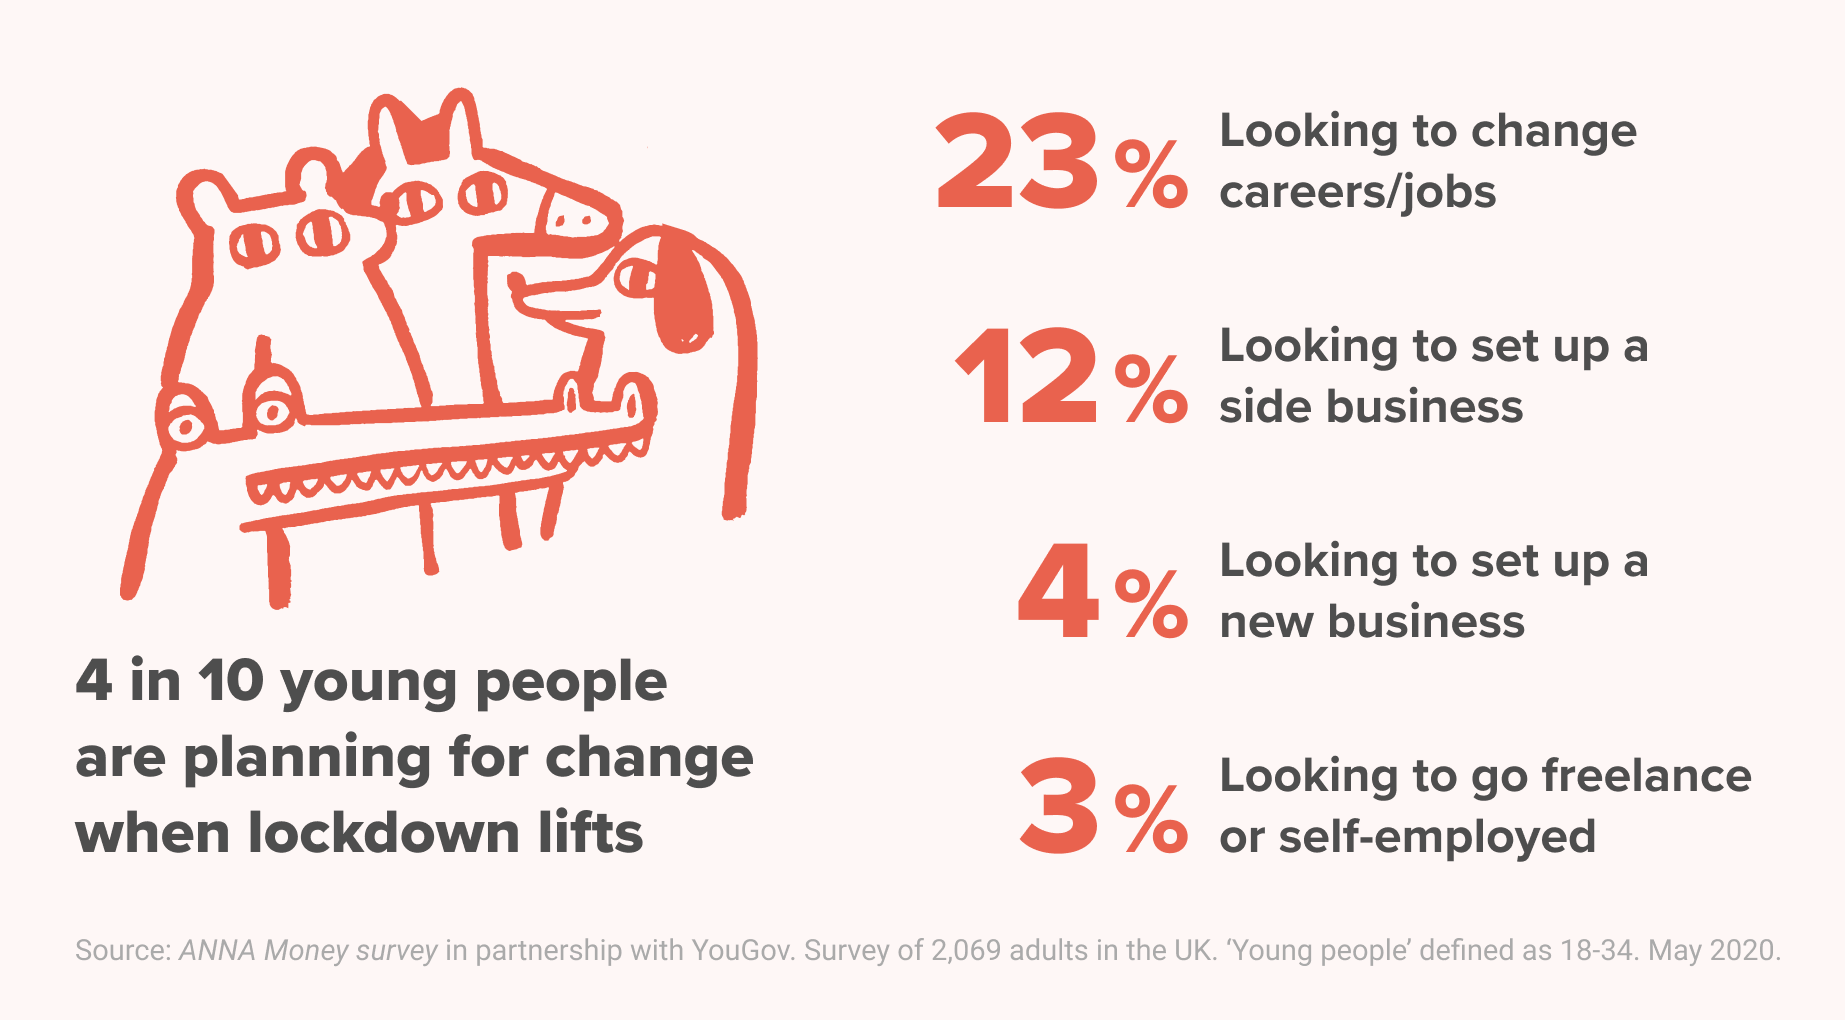 19% of young people are actively looking to start a business or go freelance after lockdown